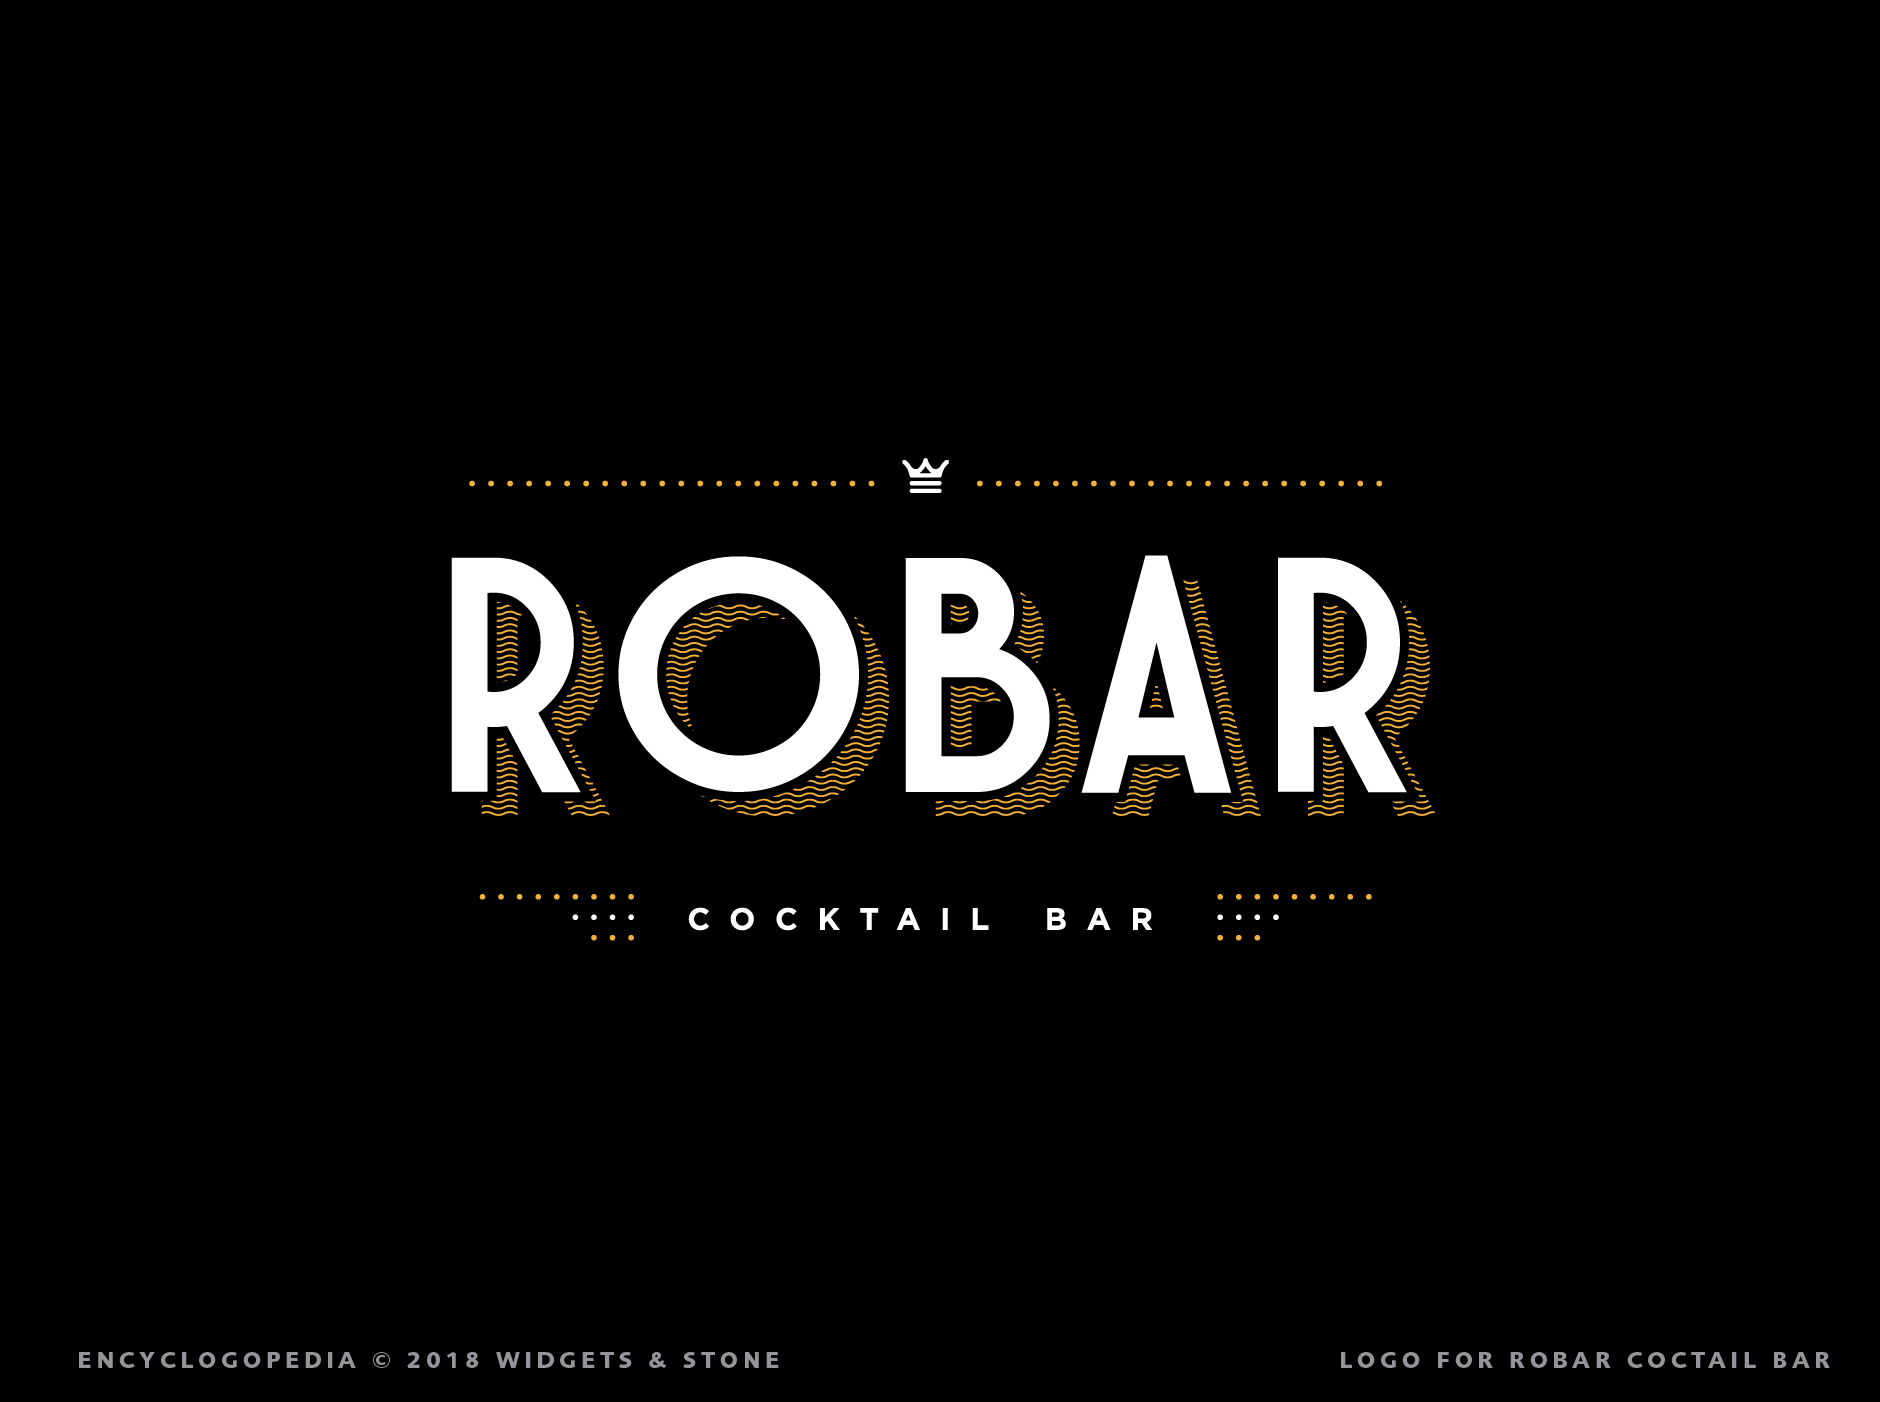 Robar Cocktail Bar Logo Graphic Design